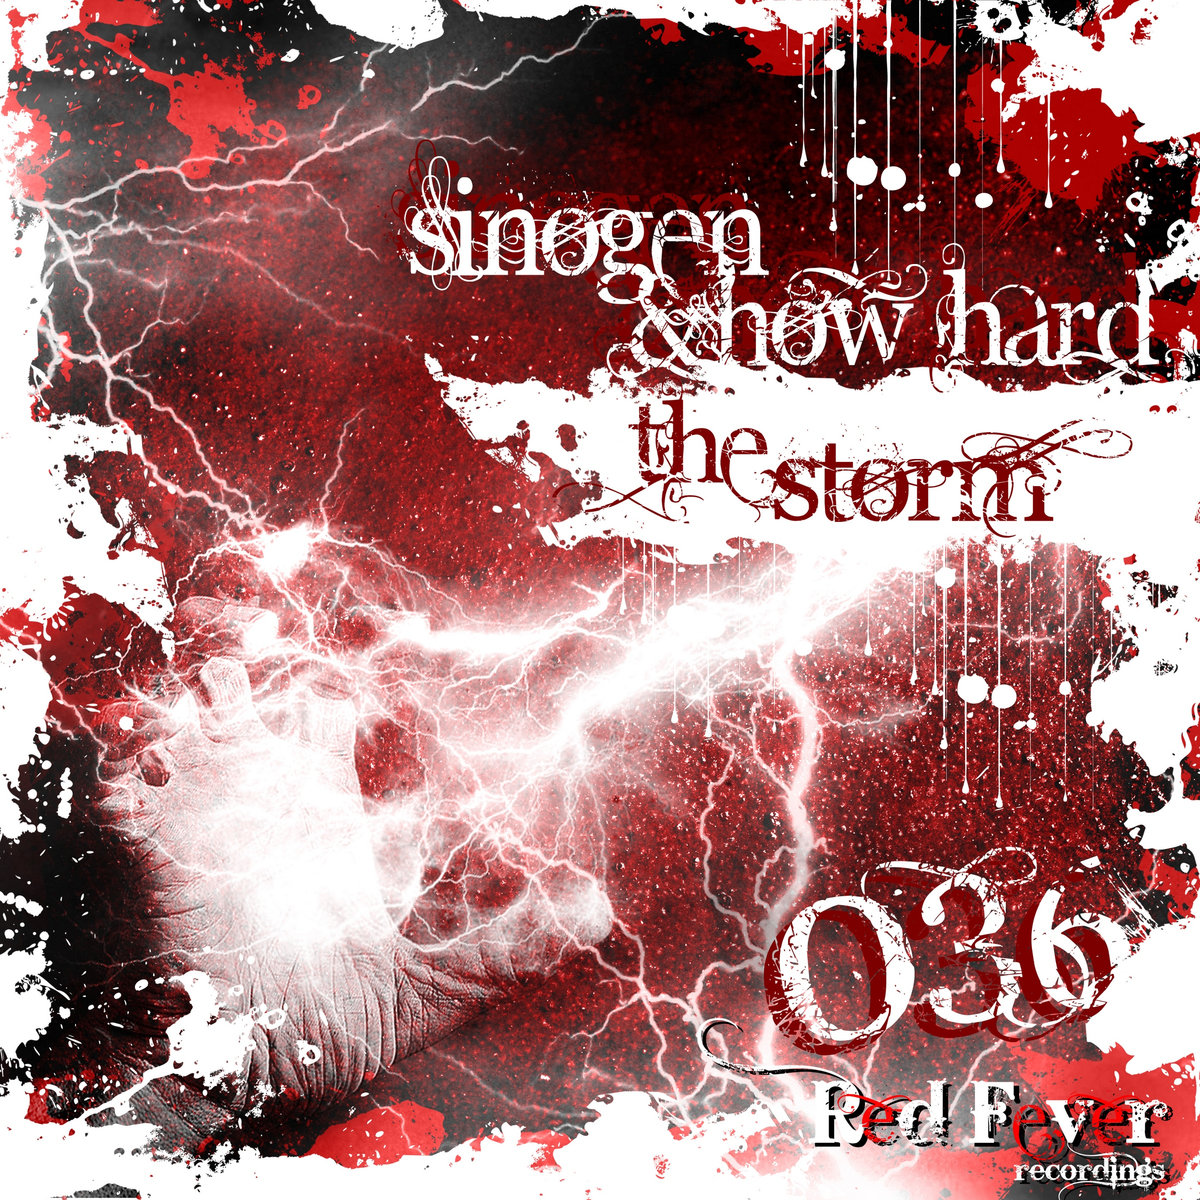 Sinogen & How Hard - The Storm @ 'The Storm' album (electronic, demanufacturer)